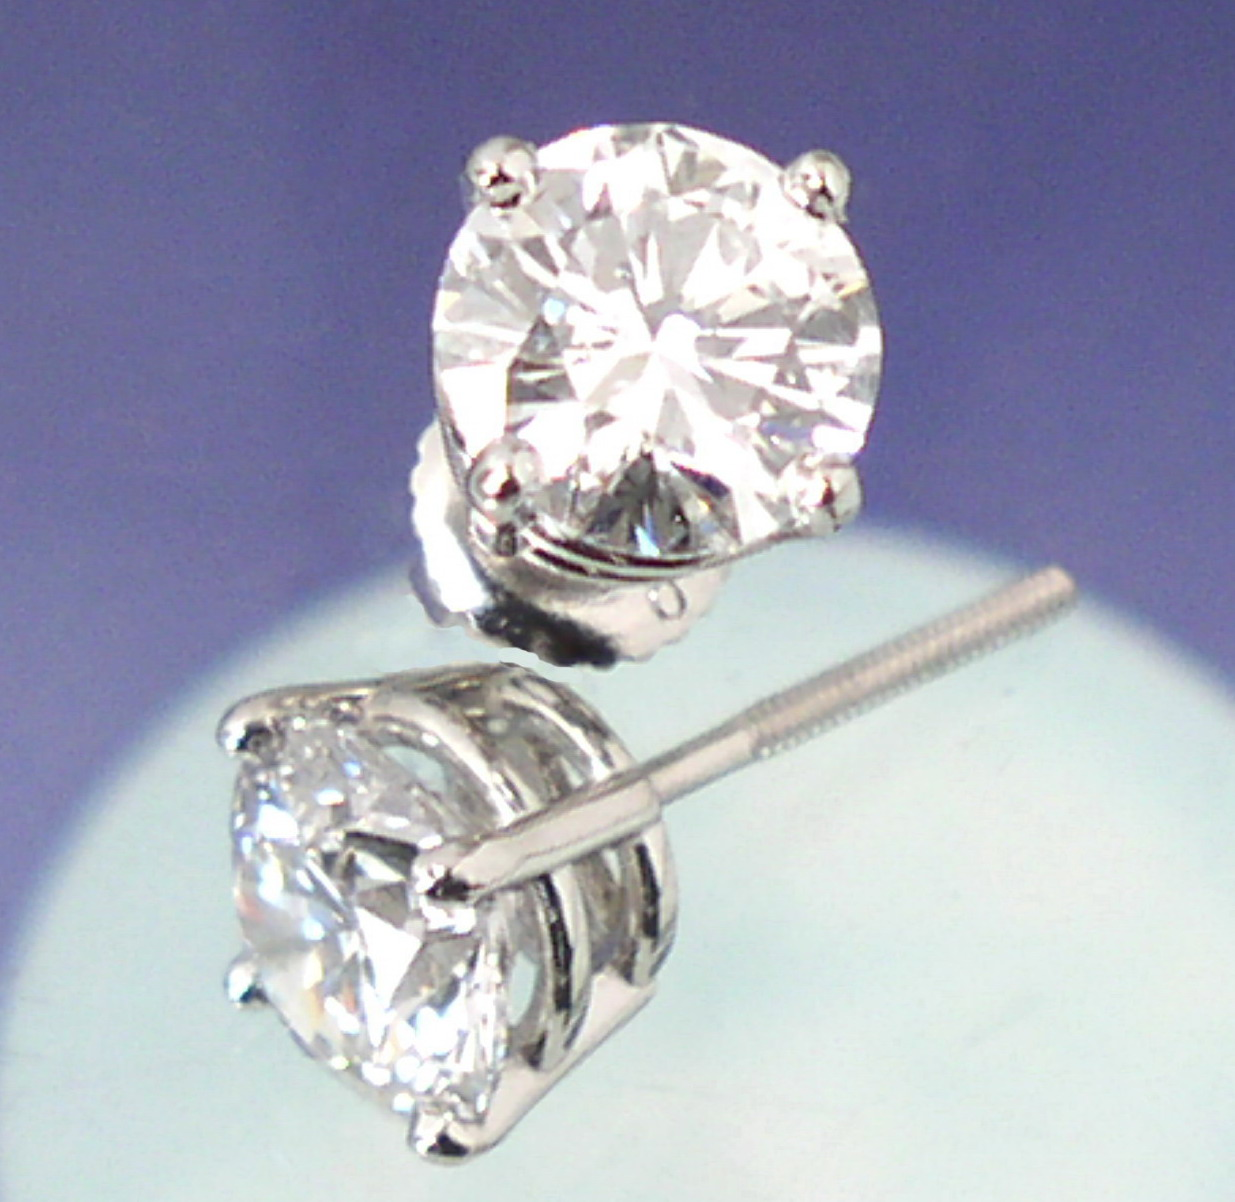 canada diamond earrings, canada diamond pendants, canada made diamond jewelery